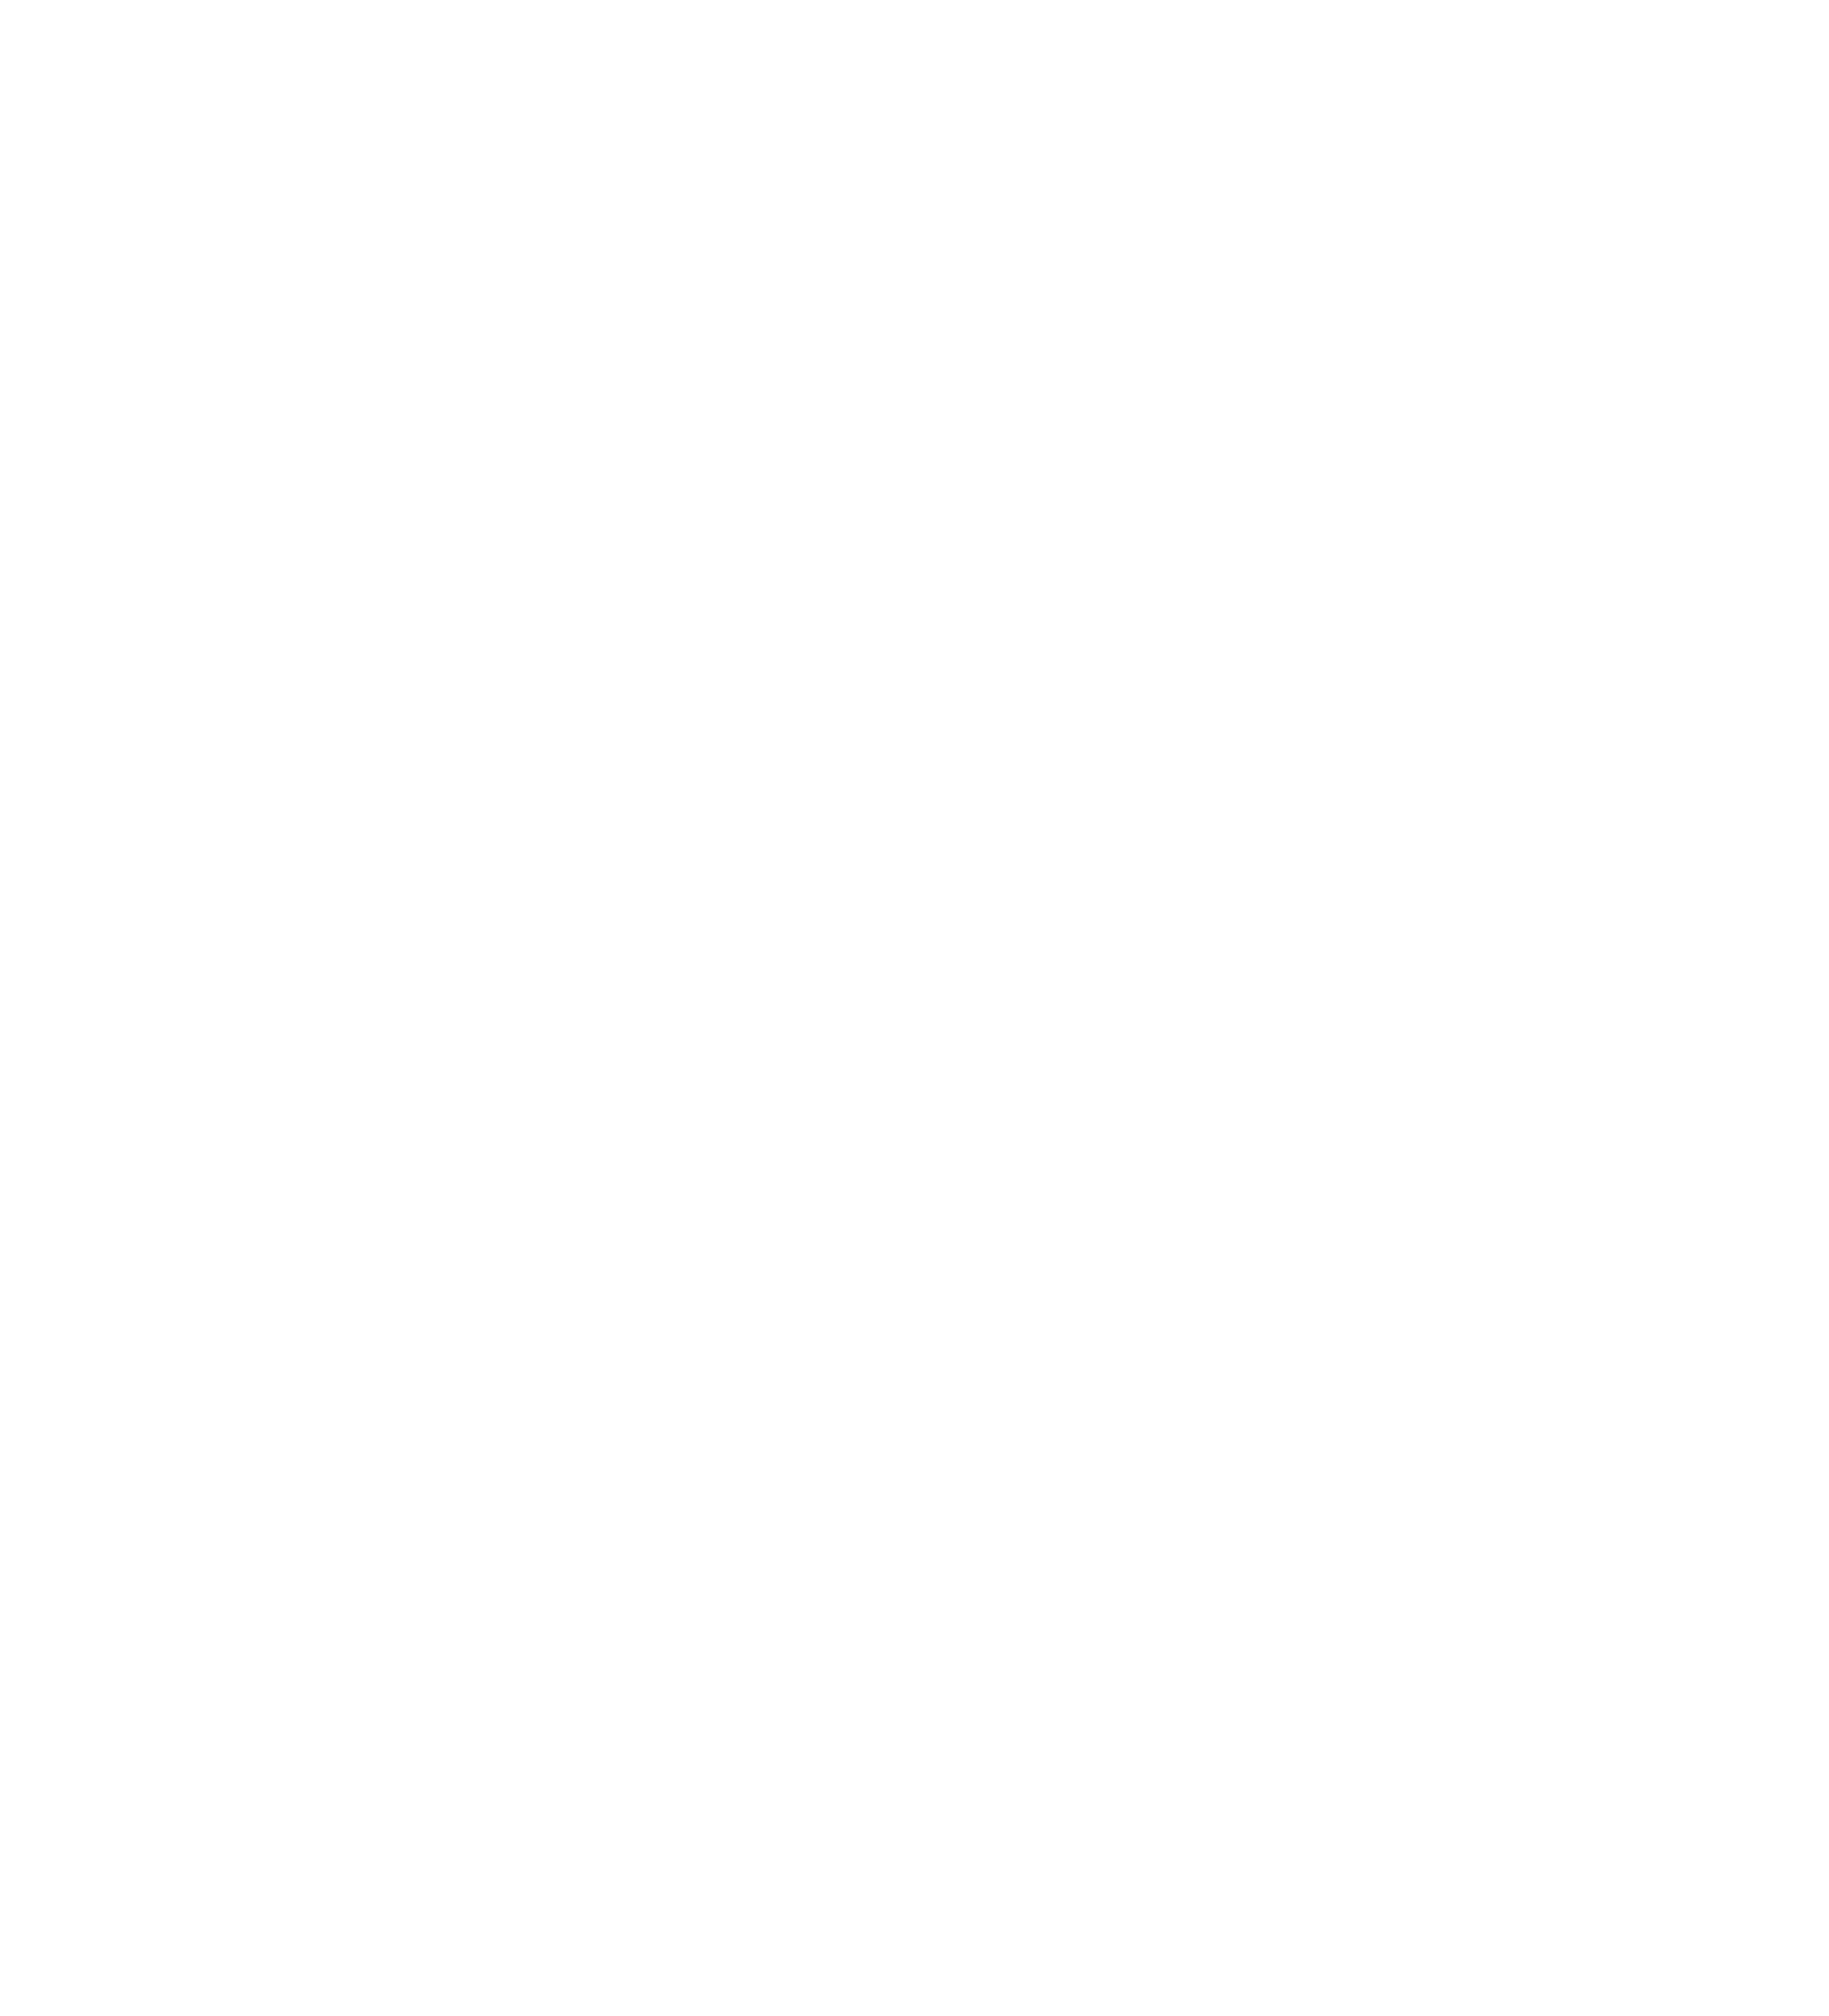 The people vs coffee white logo